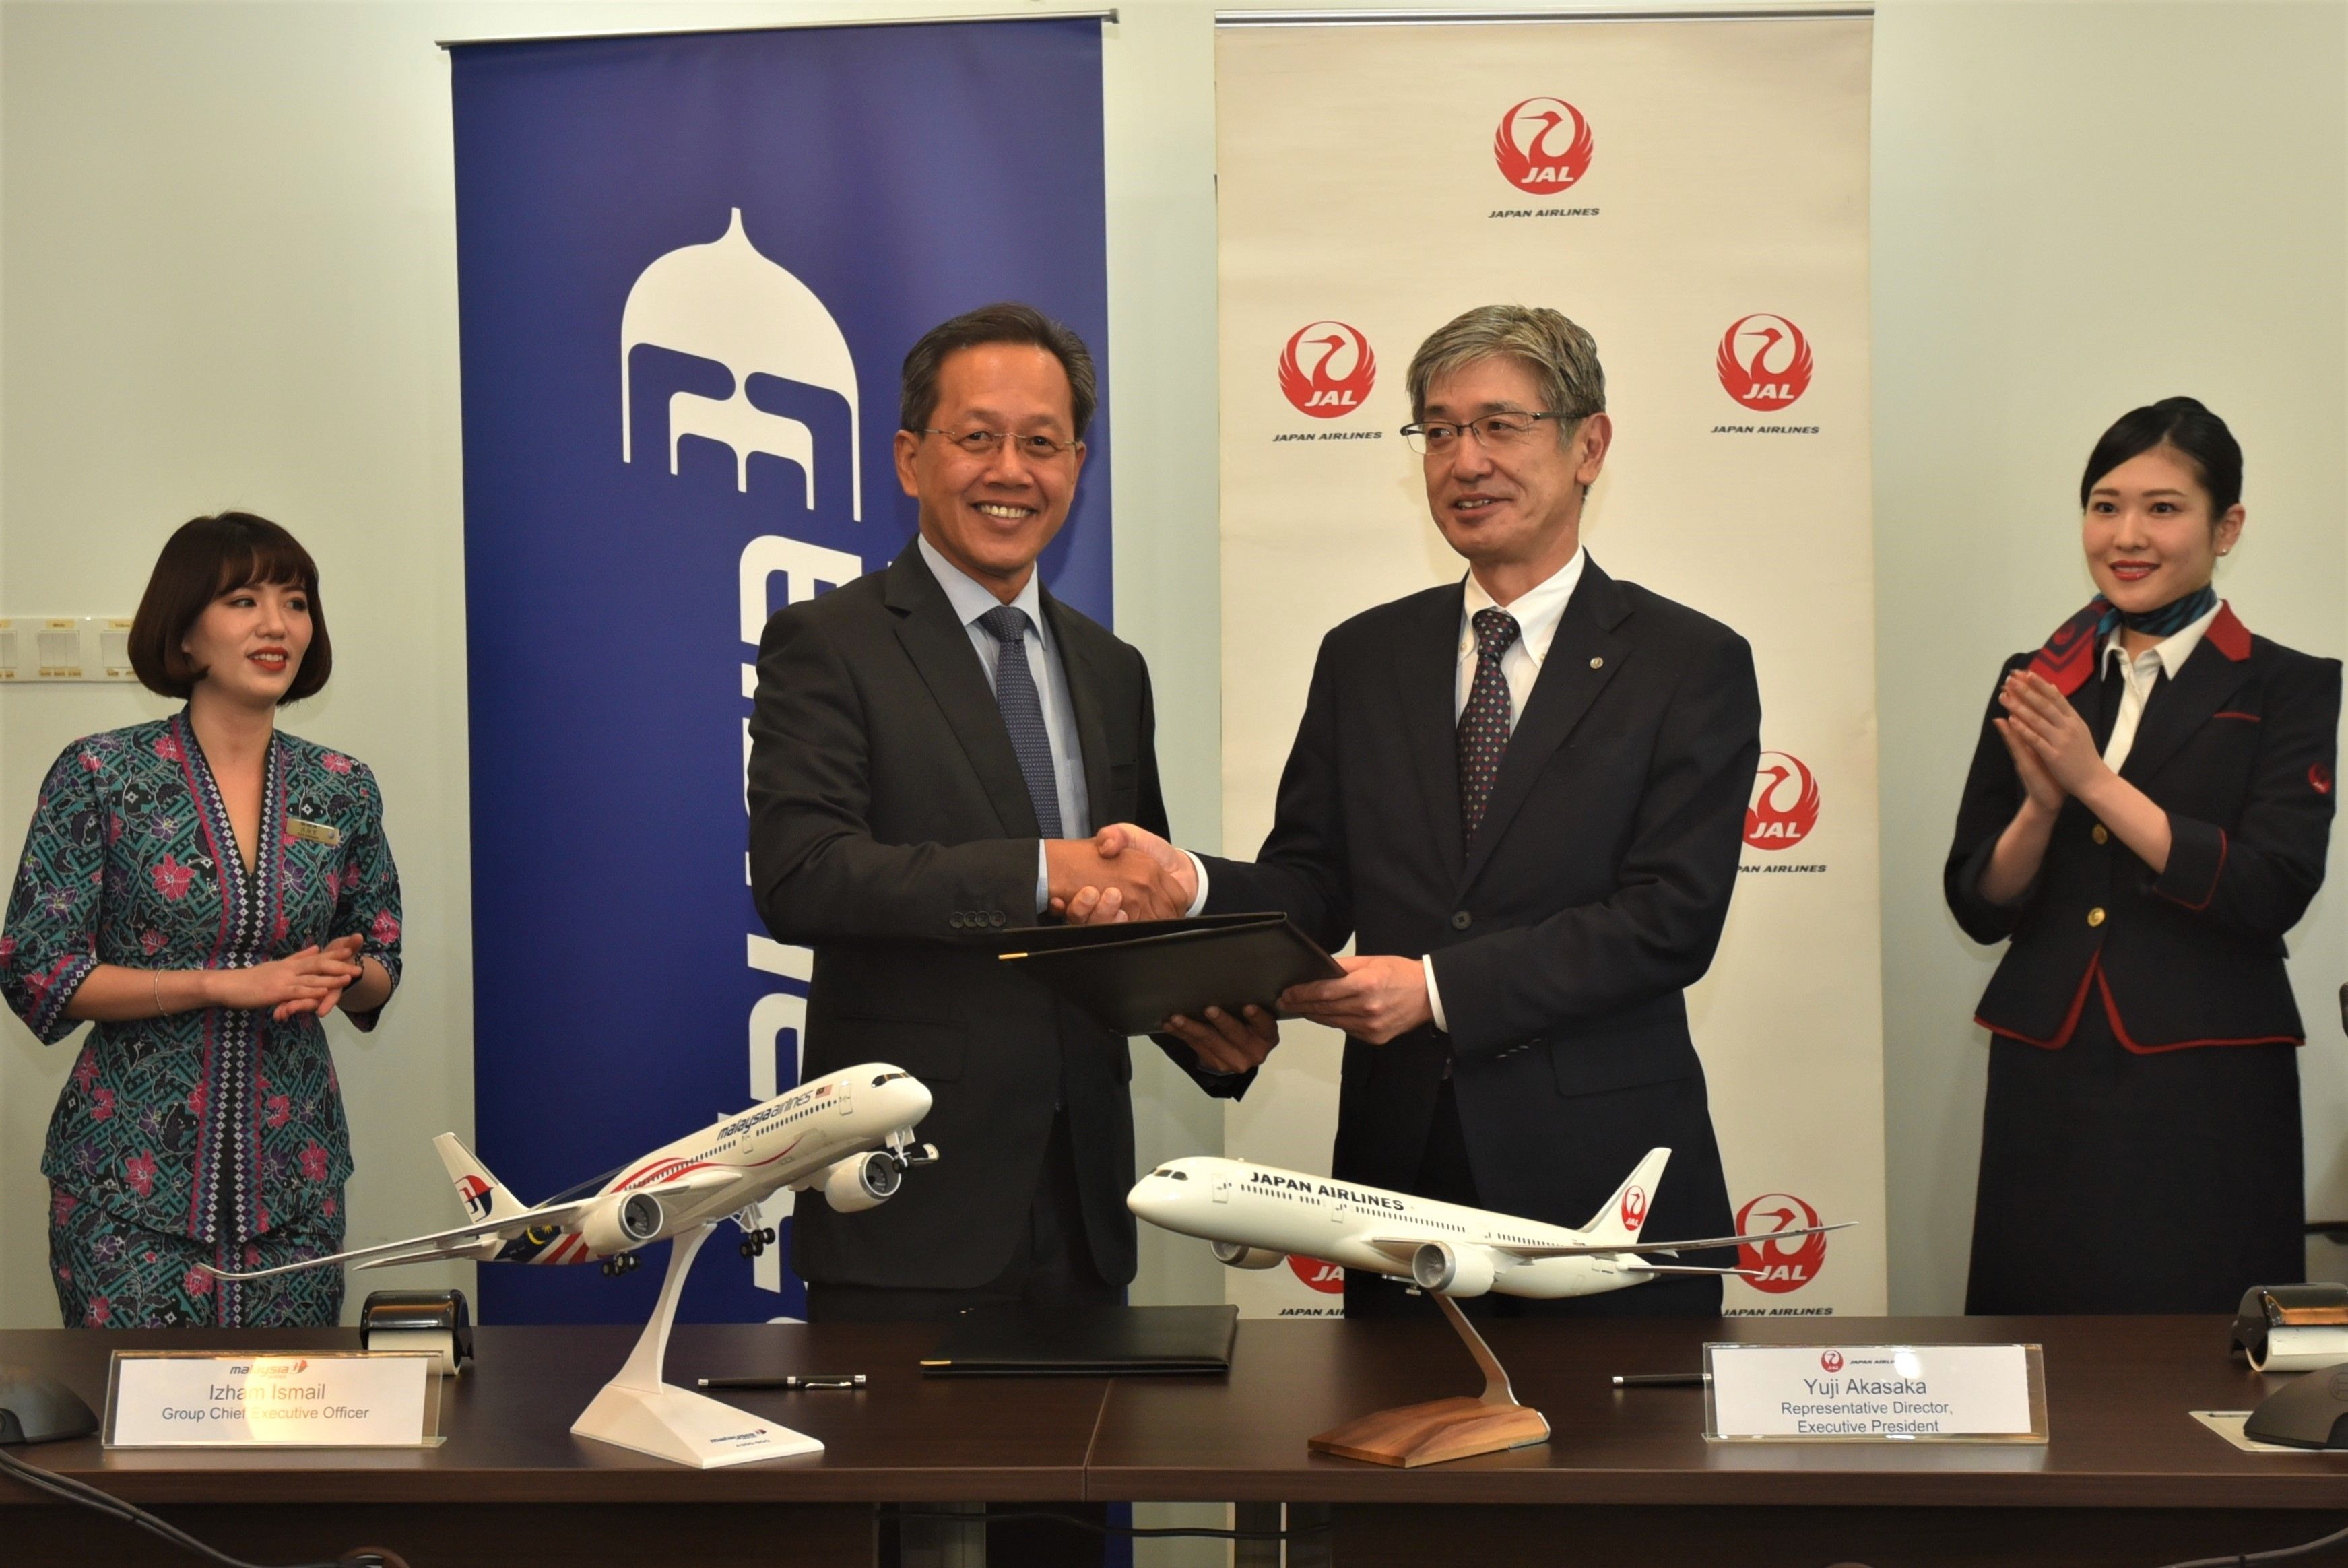 Malaysia Airlines, JAL ink joint business agreement | The Star Online